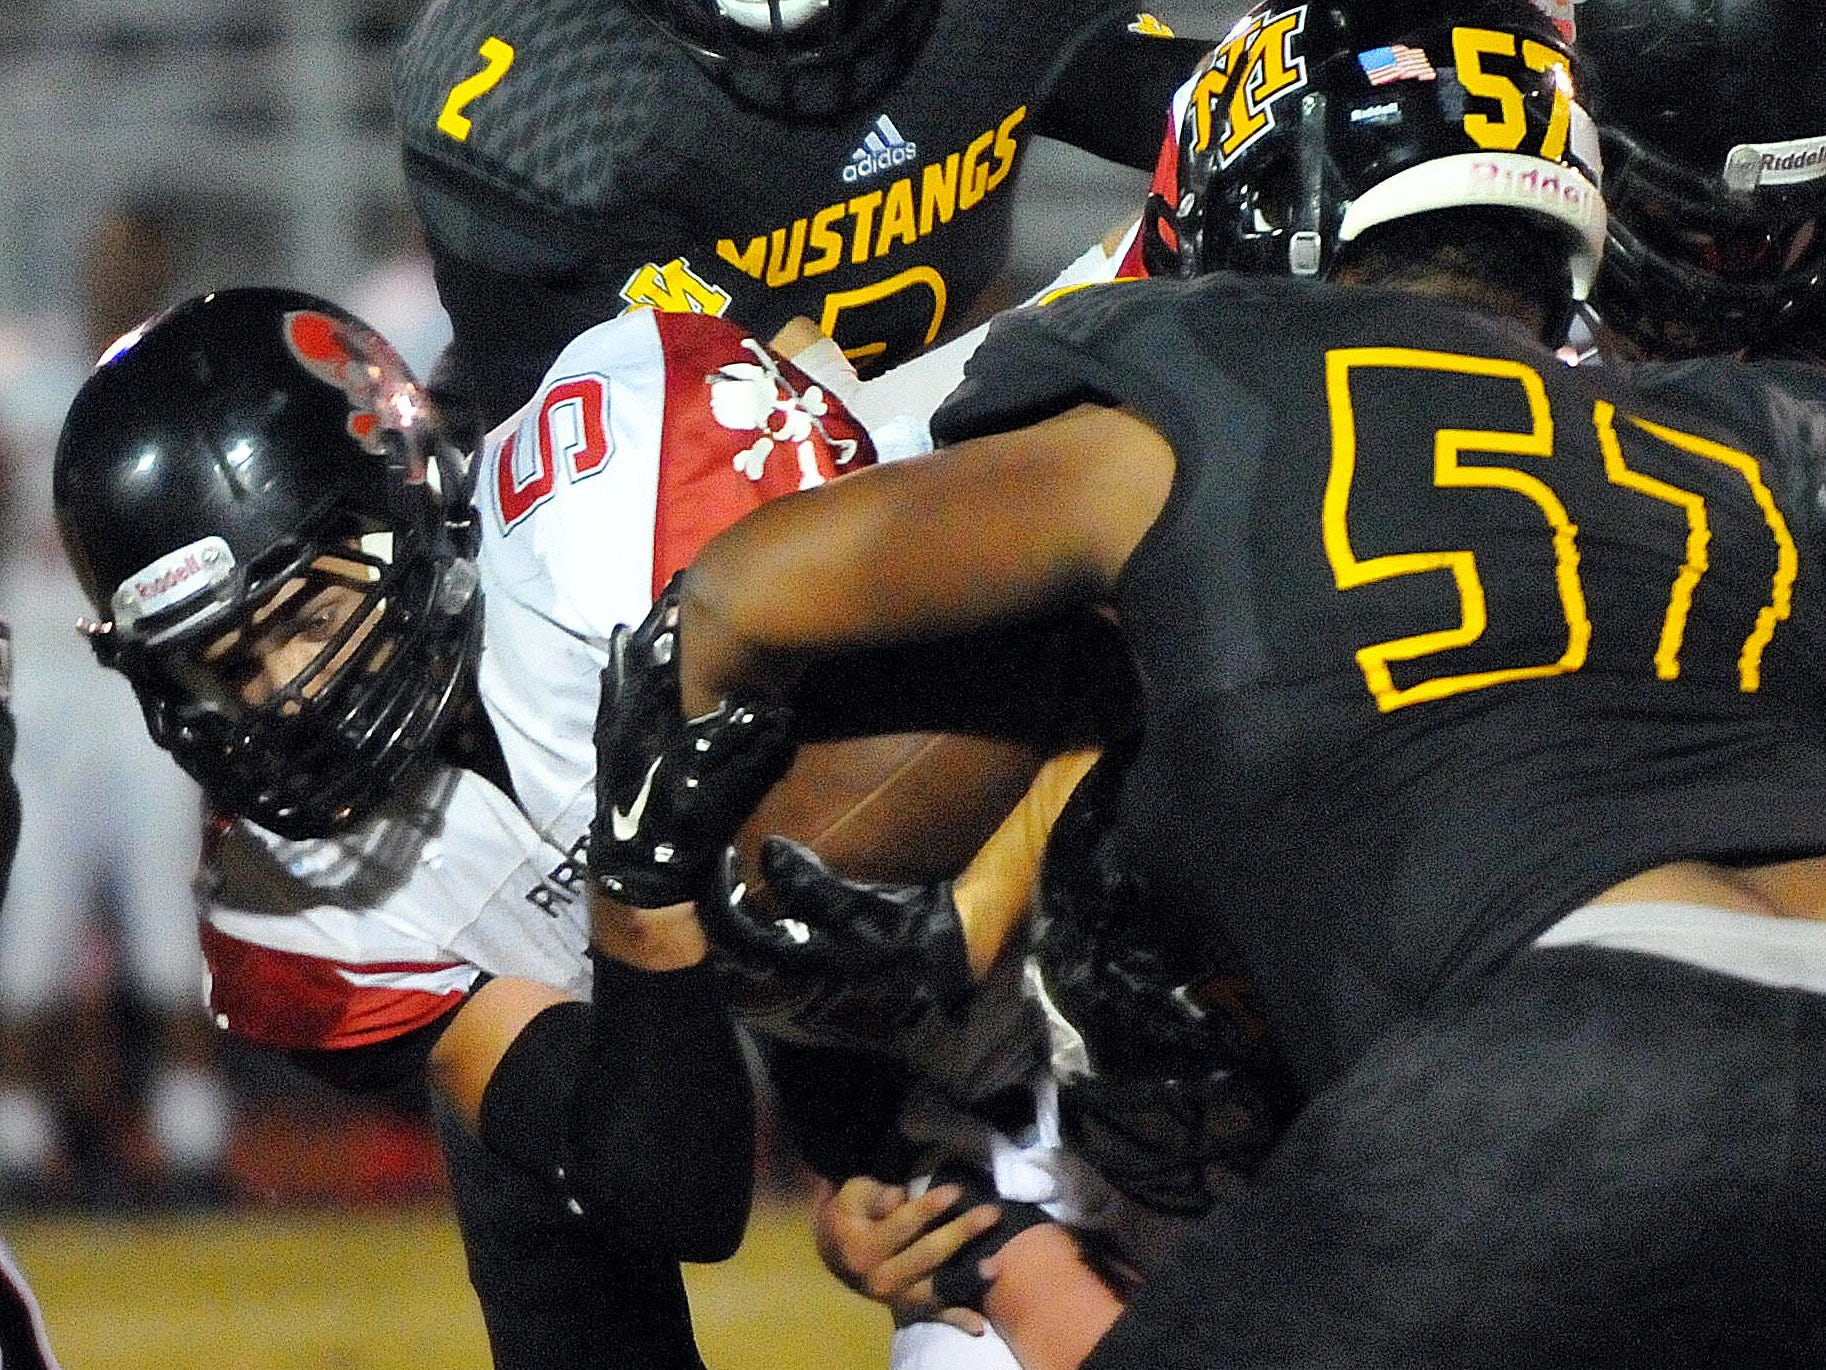 Merritt Island High's Brandon Montanez (57) rips the ball from Palm Bay High's Jared Morris.